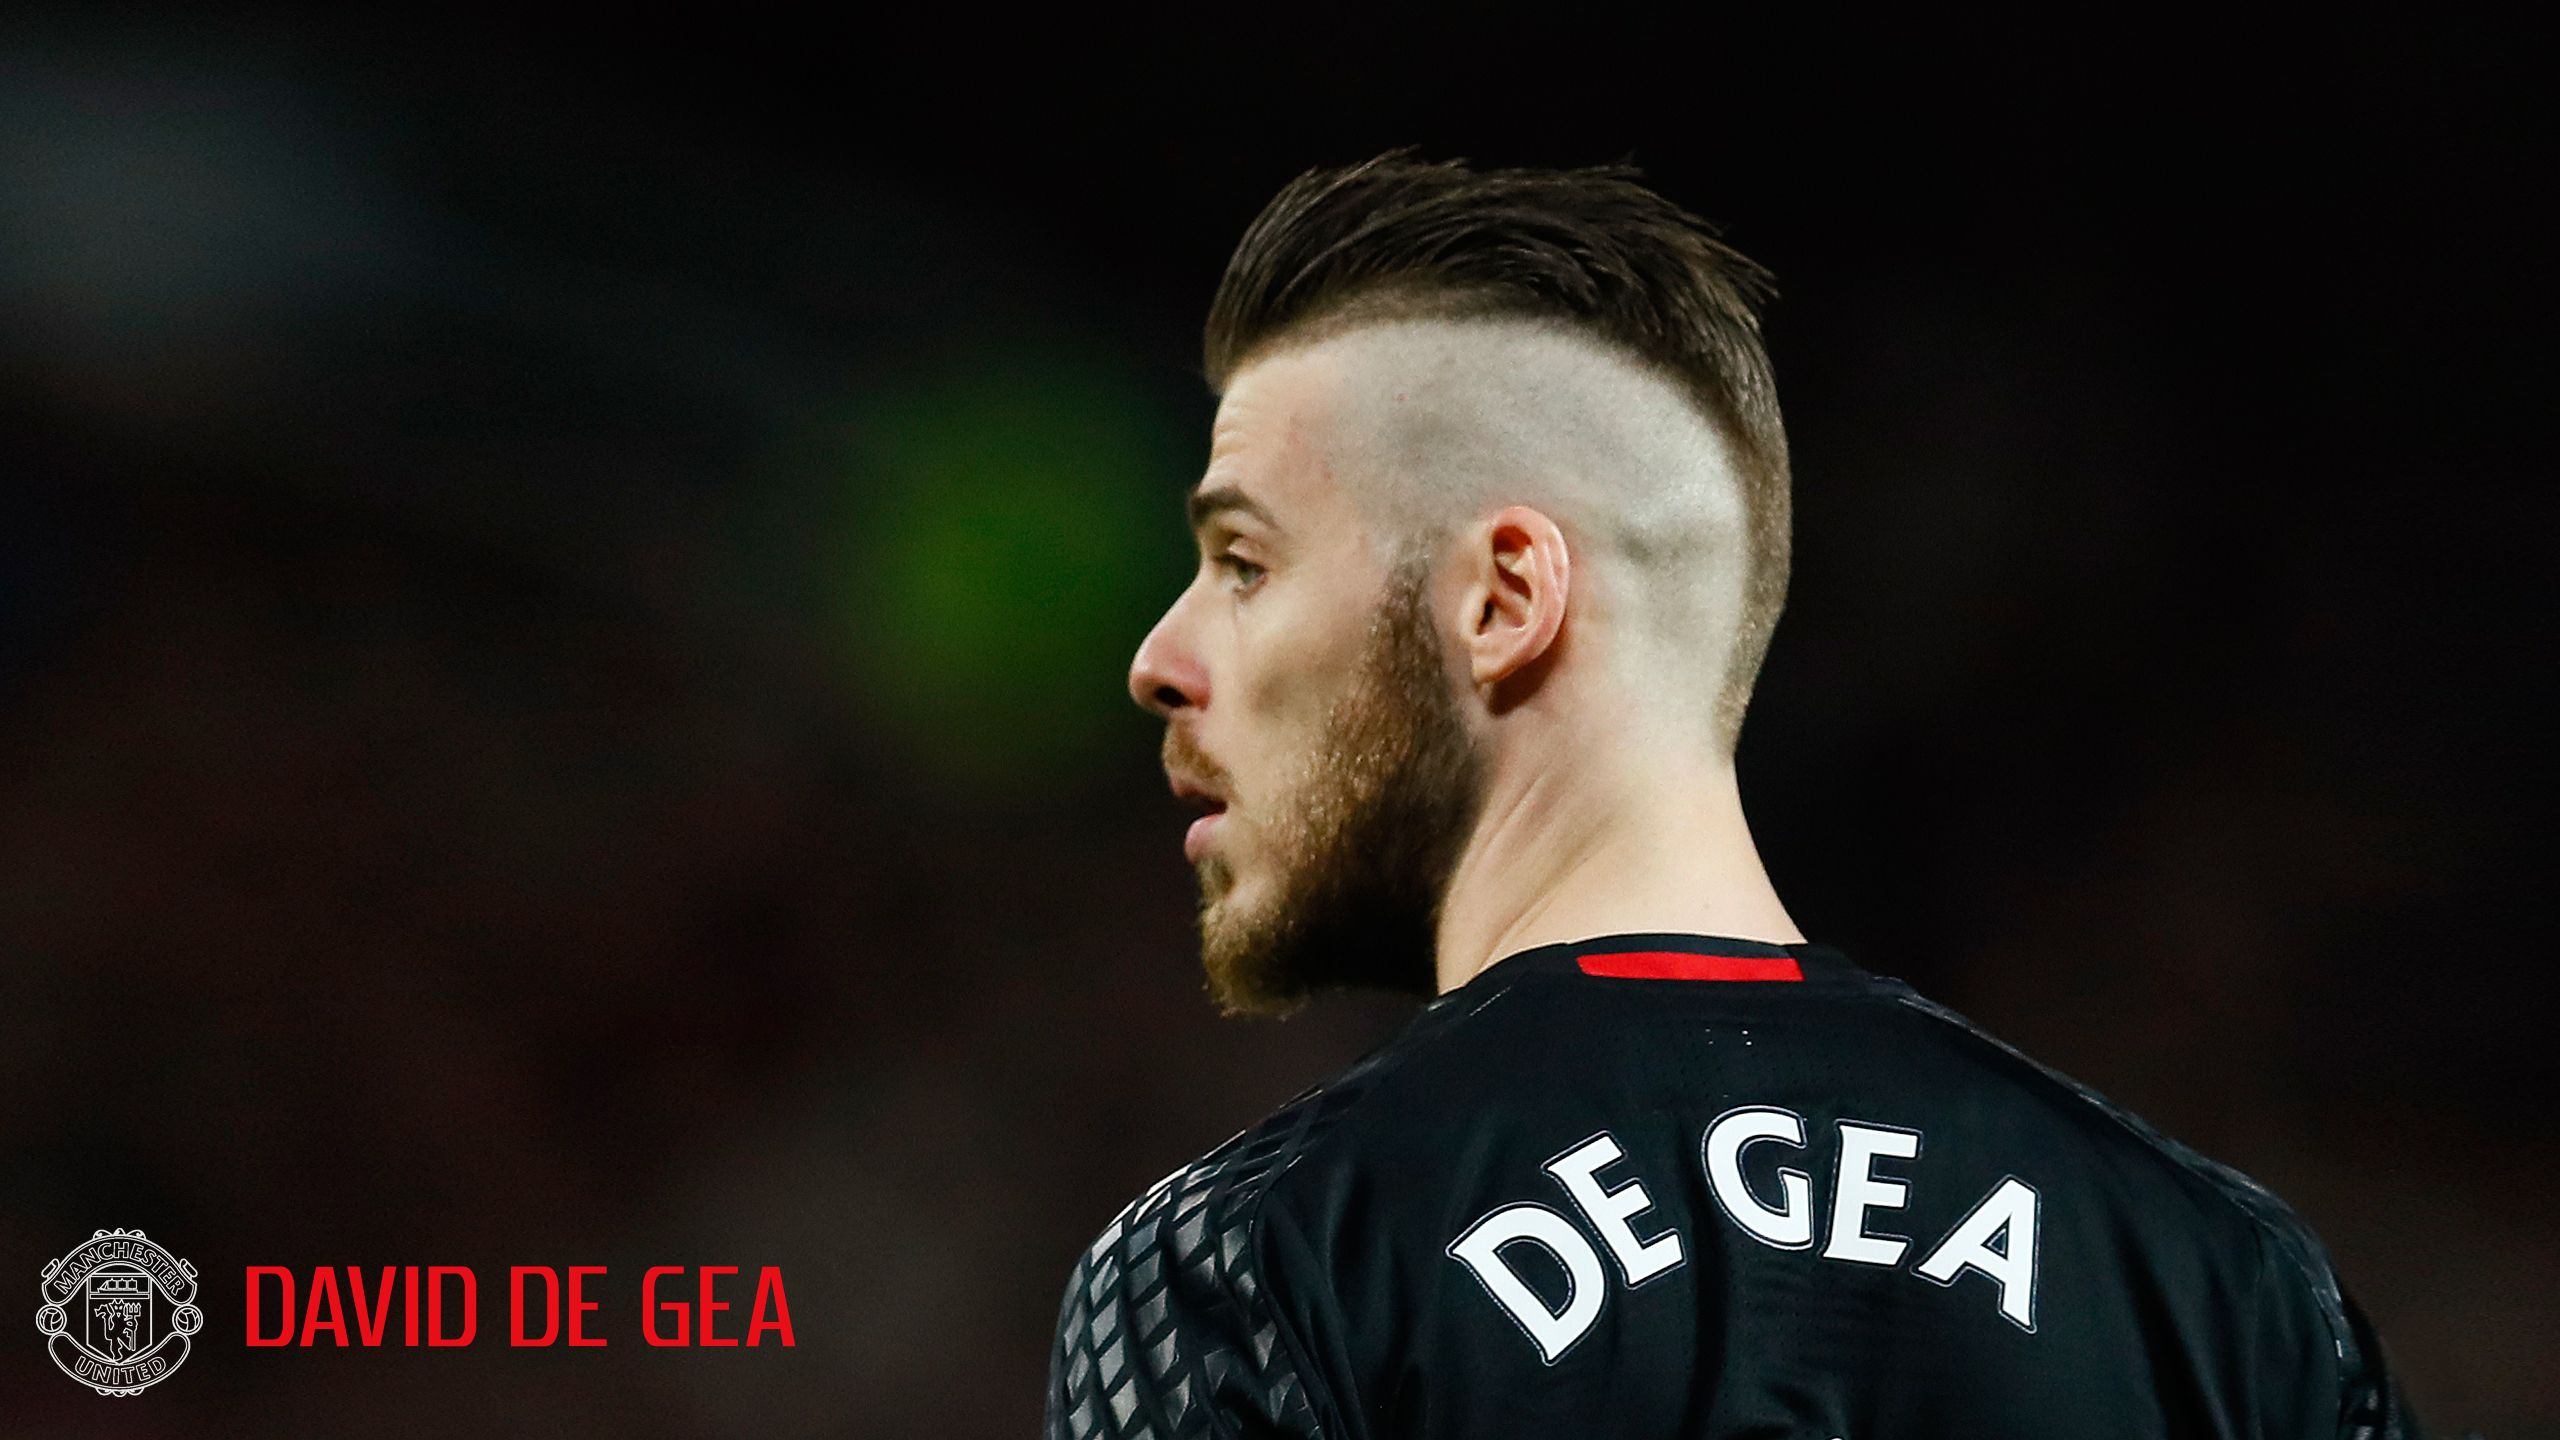 David de Gea Manchester United wallpaper - A Goal Keeper for 2017 ...